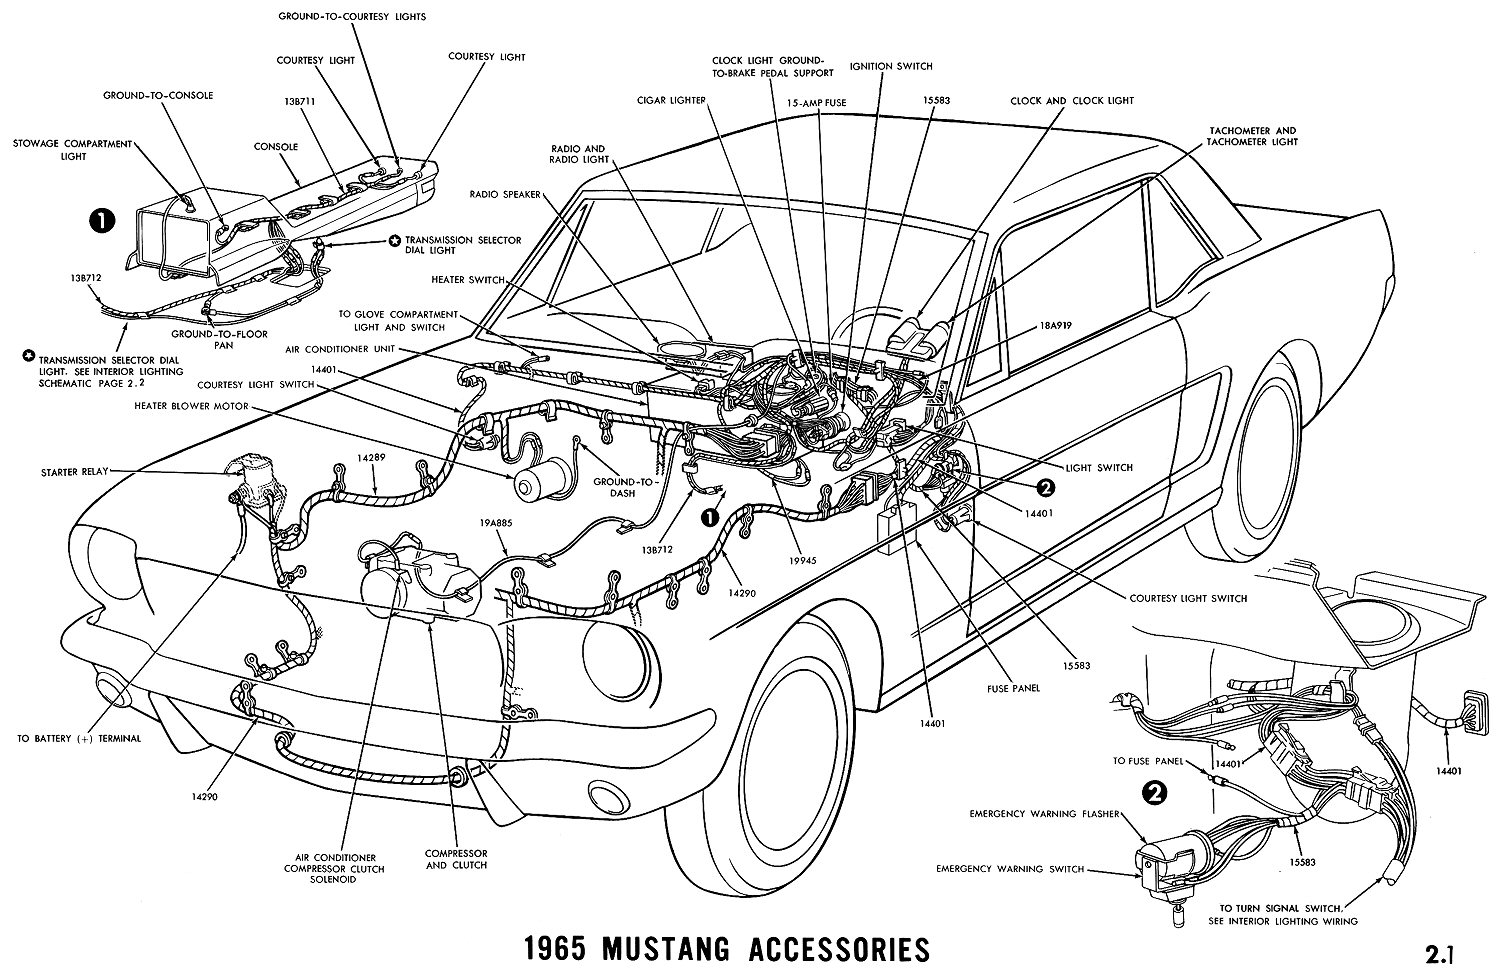 65 mustang accesories 1965 mustang accesories diagram mustang parts diagram at bayanpartner.co